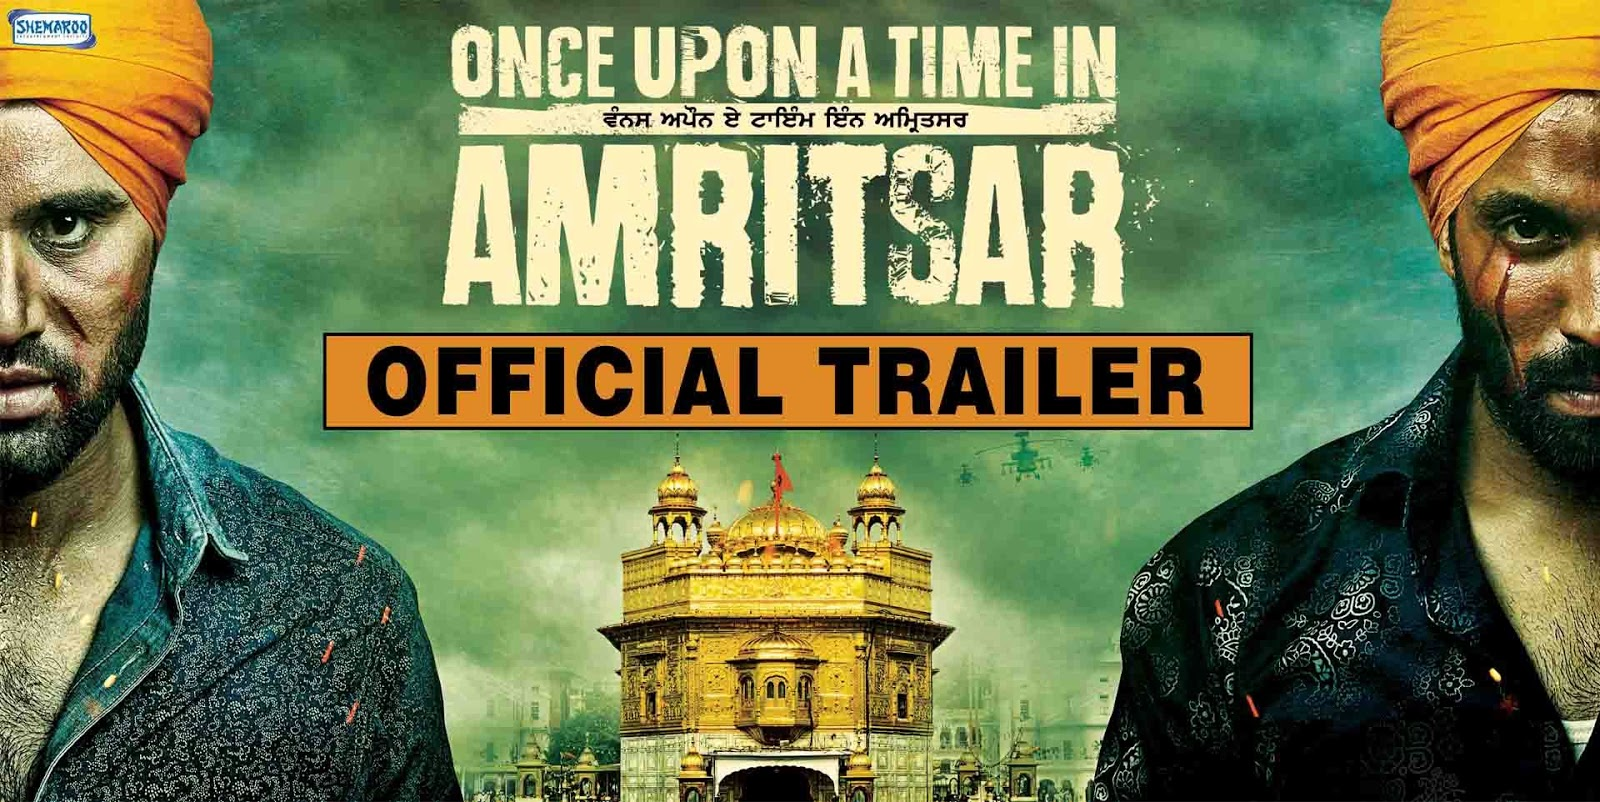 Complete cast and crew of Once Upon a Time in Amritsar  (2016) bollywood hindi movie wiki, poster, Trailer, music list - Dilpreet Dhillon and  Gurjind Mann, Movie release date 10 June 2016